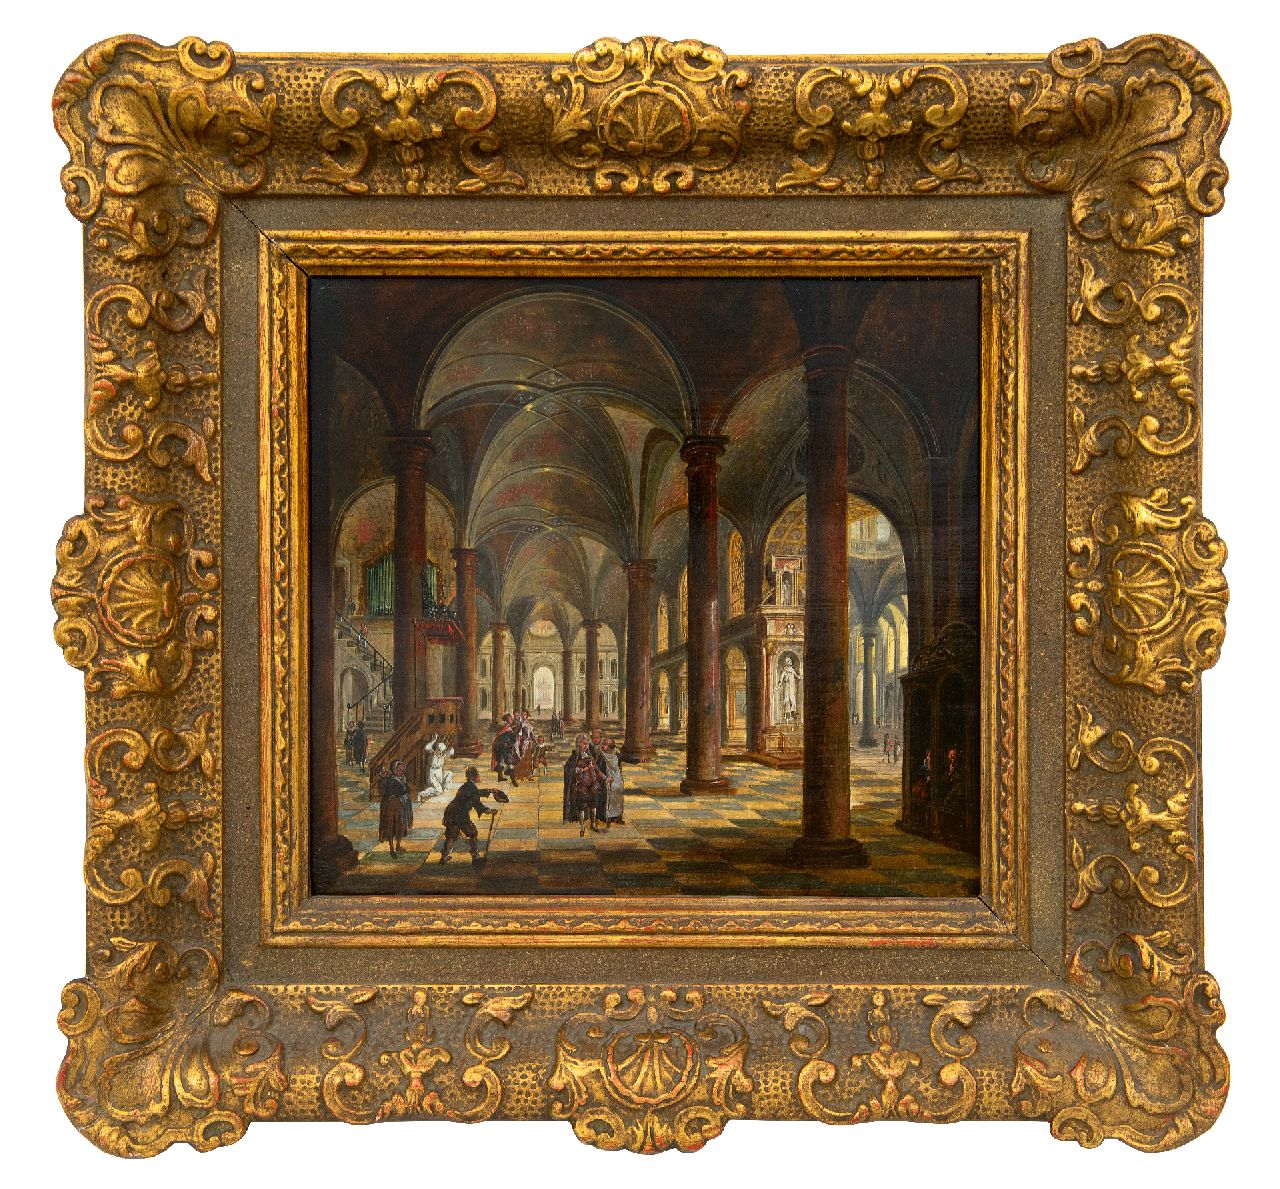 Stöcklin C.  | Christian Stöcklin | Paintings offered for sale | Church interior with figures, oil on panel 27.5 x 30.9 cm, signed l.c.